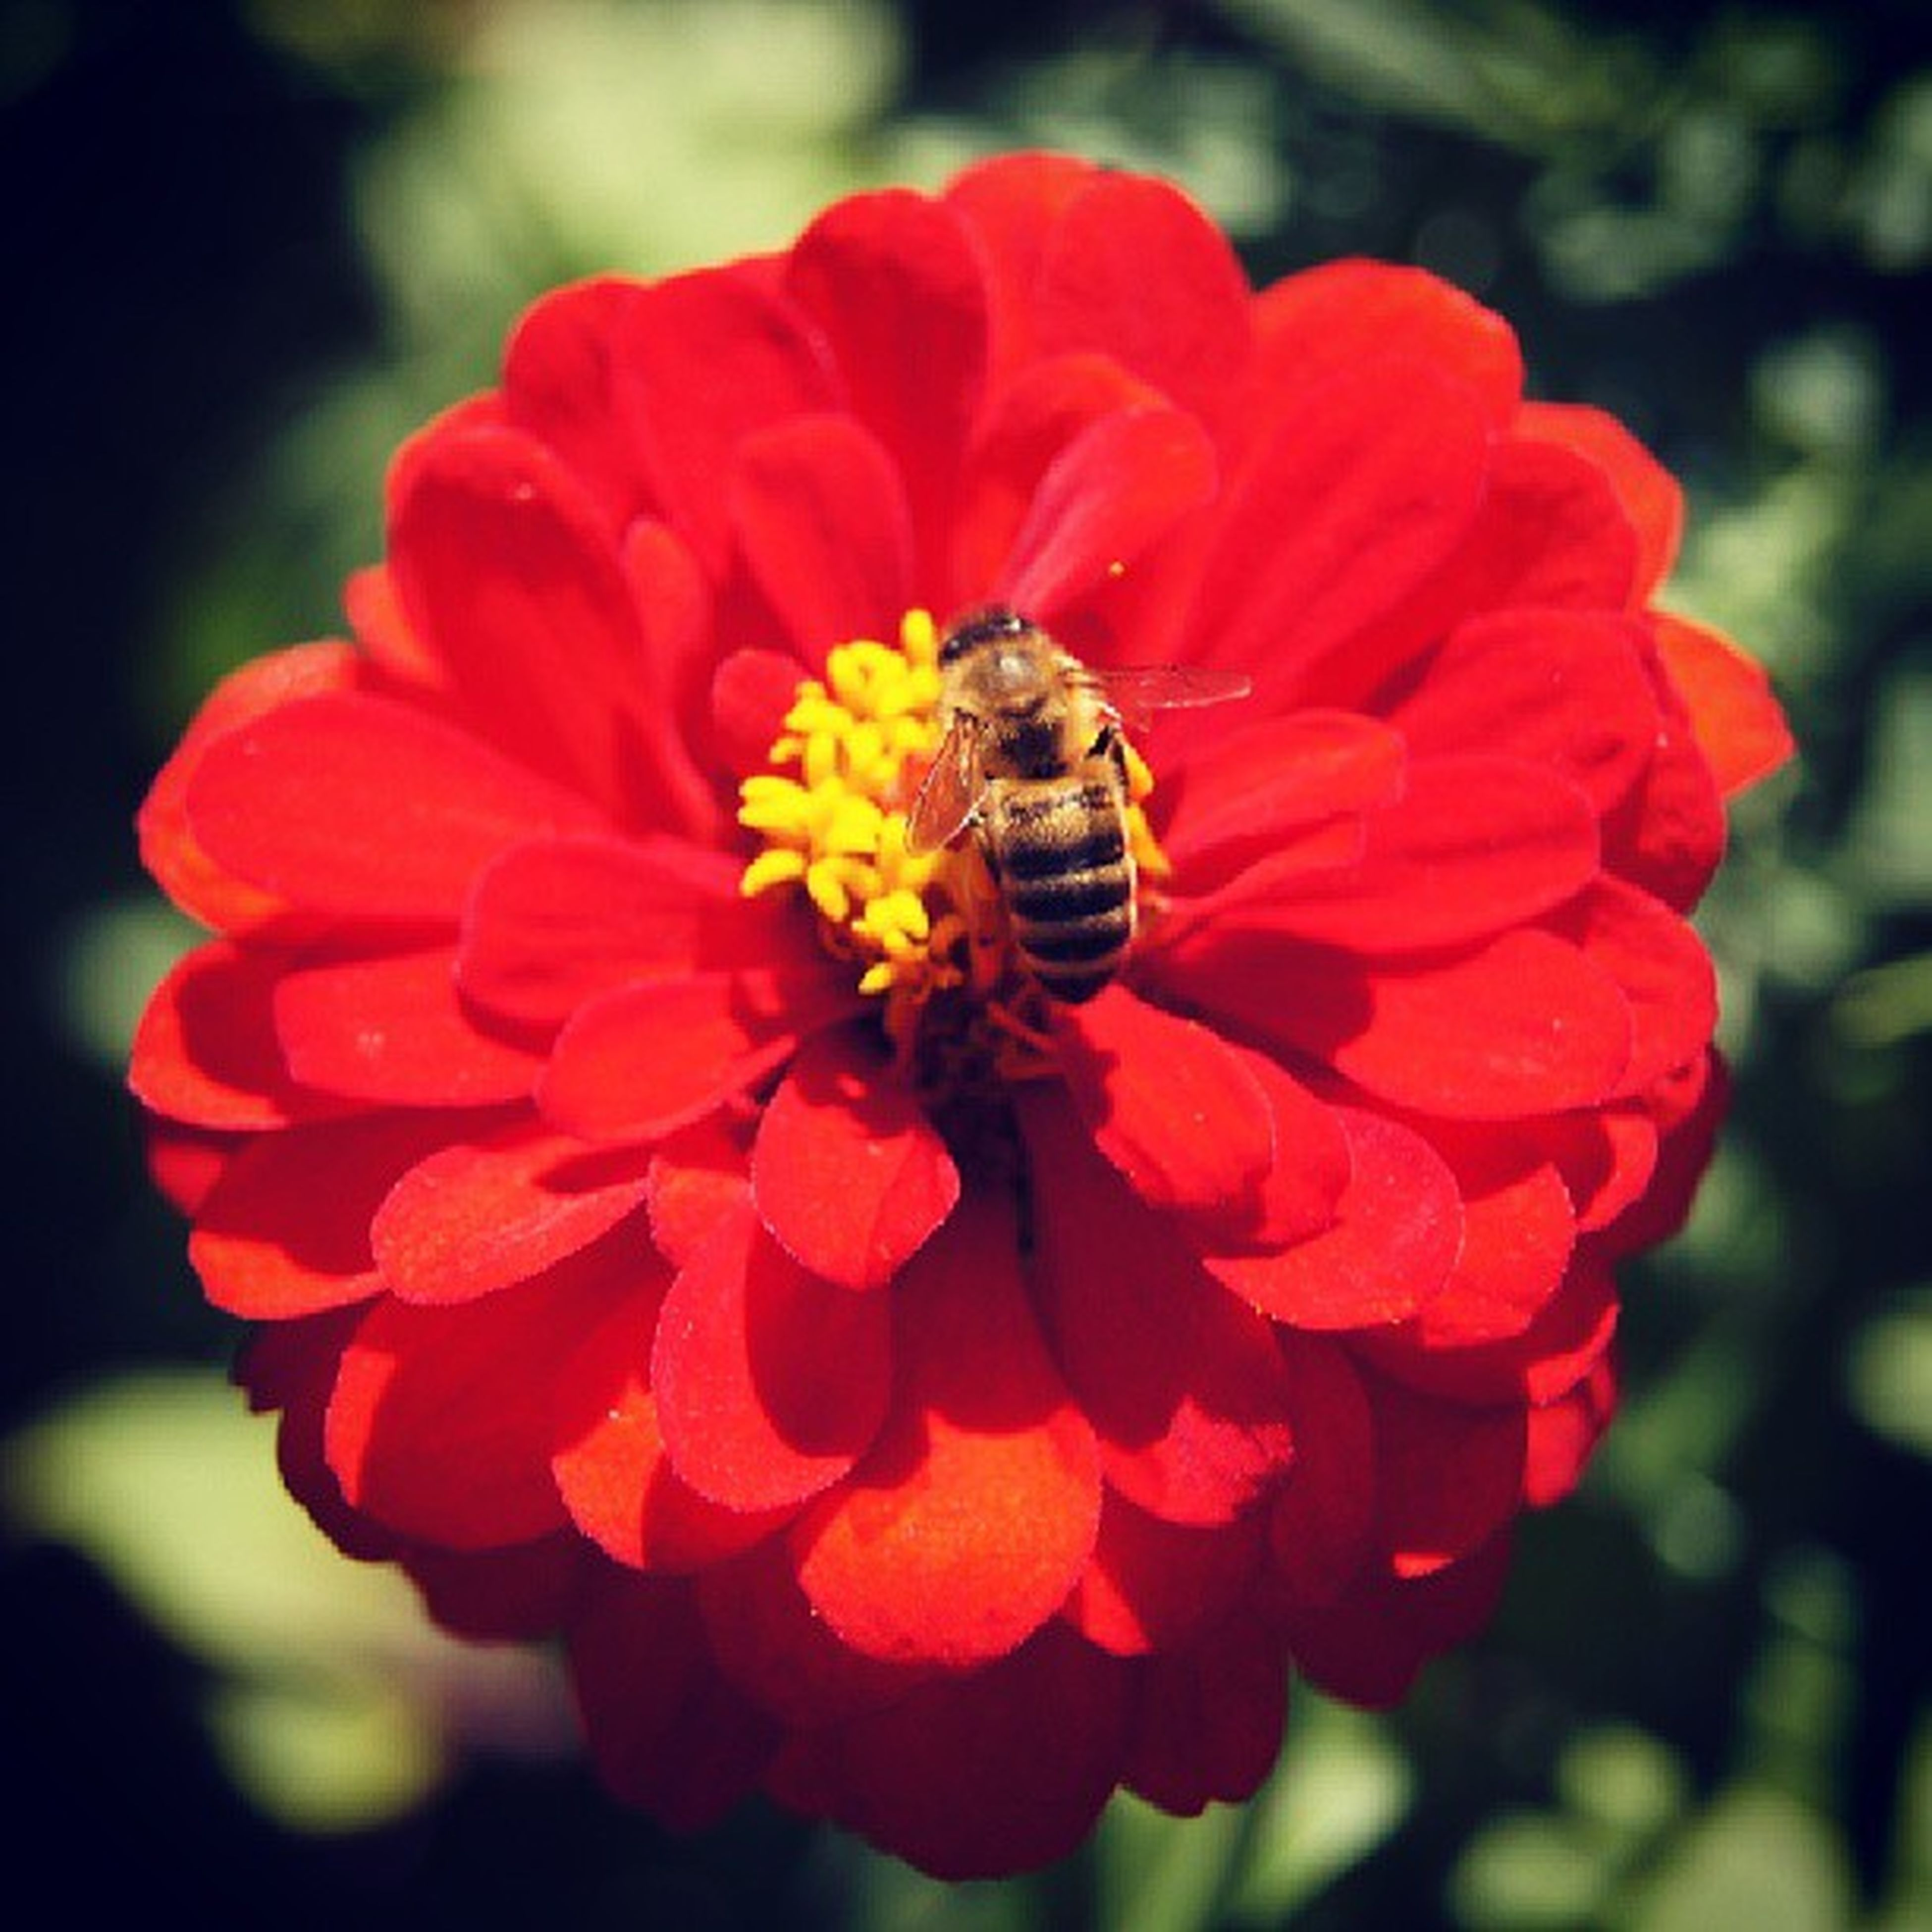 flower, petal, one animal, animal themes, animals in the wild, flower head, insect, wildlife, freshness, fragility, close-up, beauty in nature, focus on foreground, growth, single flower, nature, red, pollination, blooming, plant